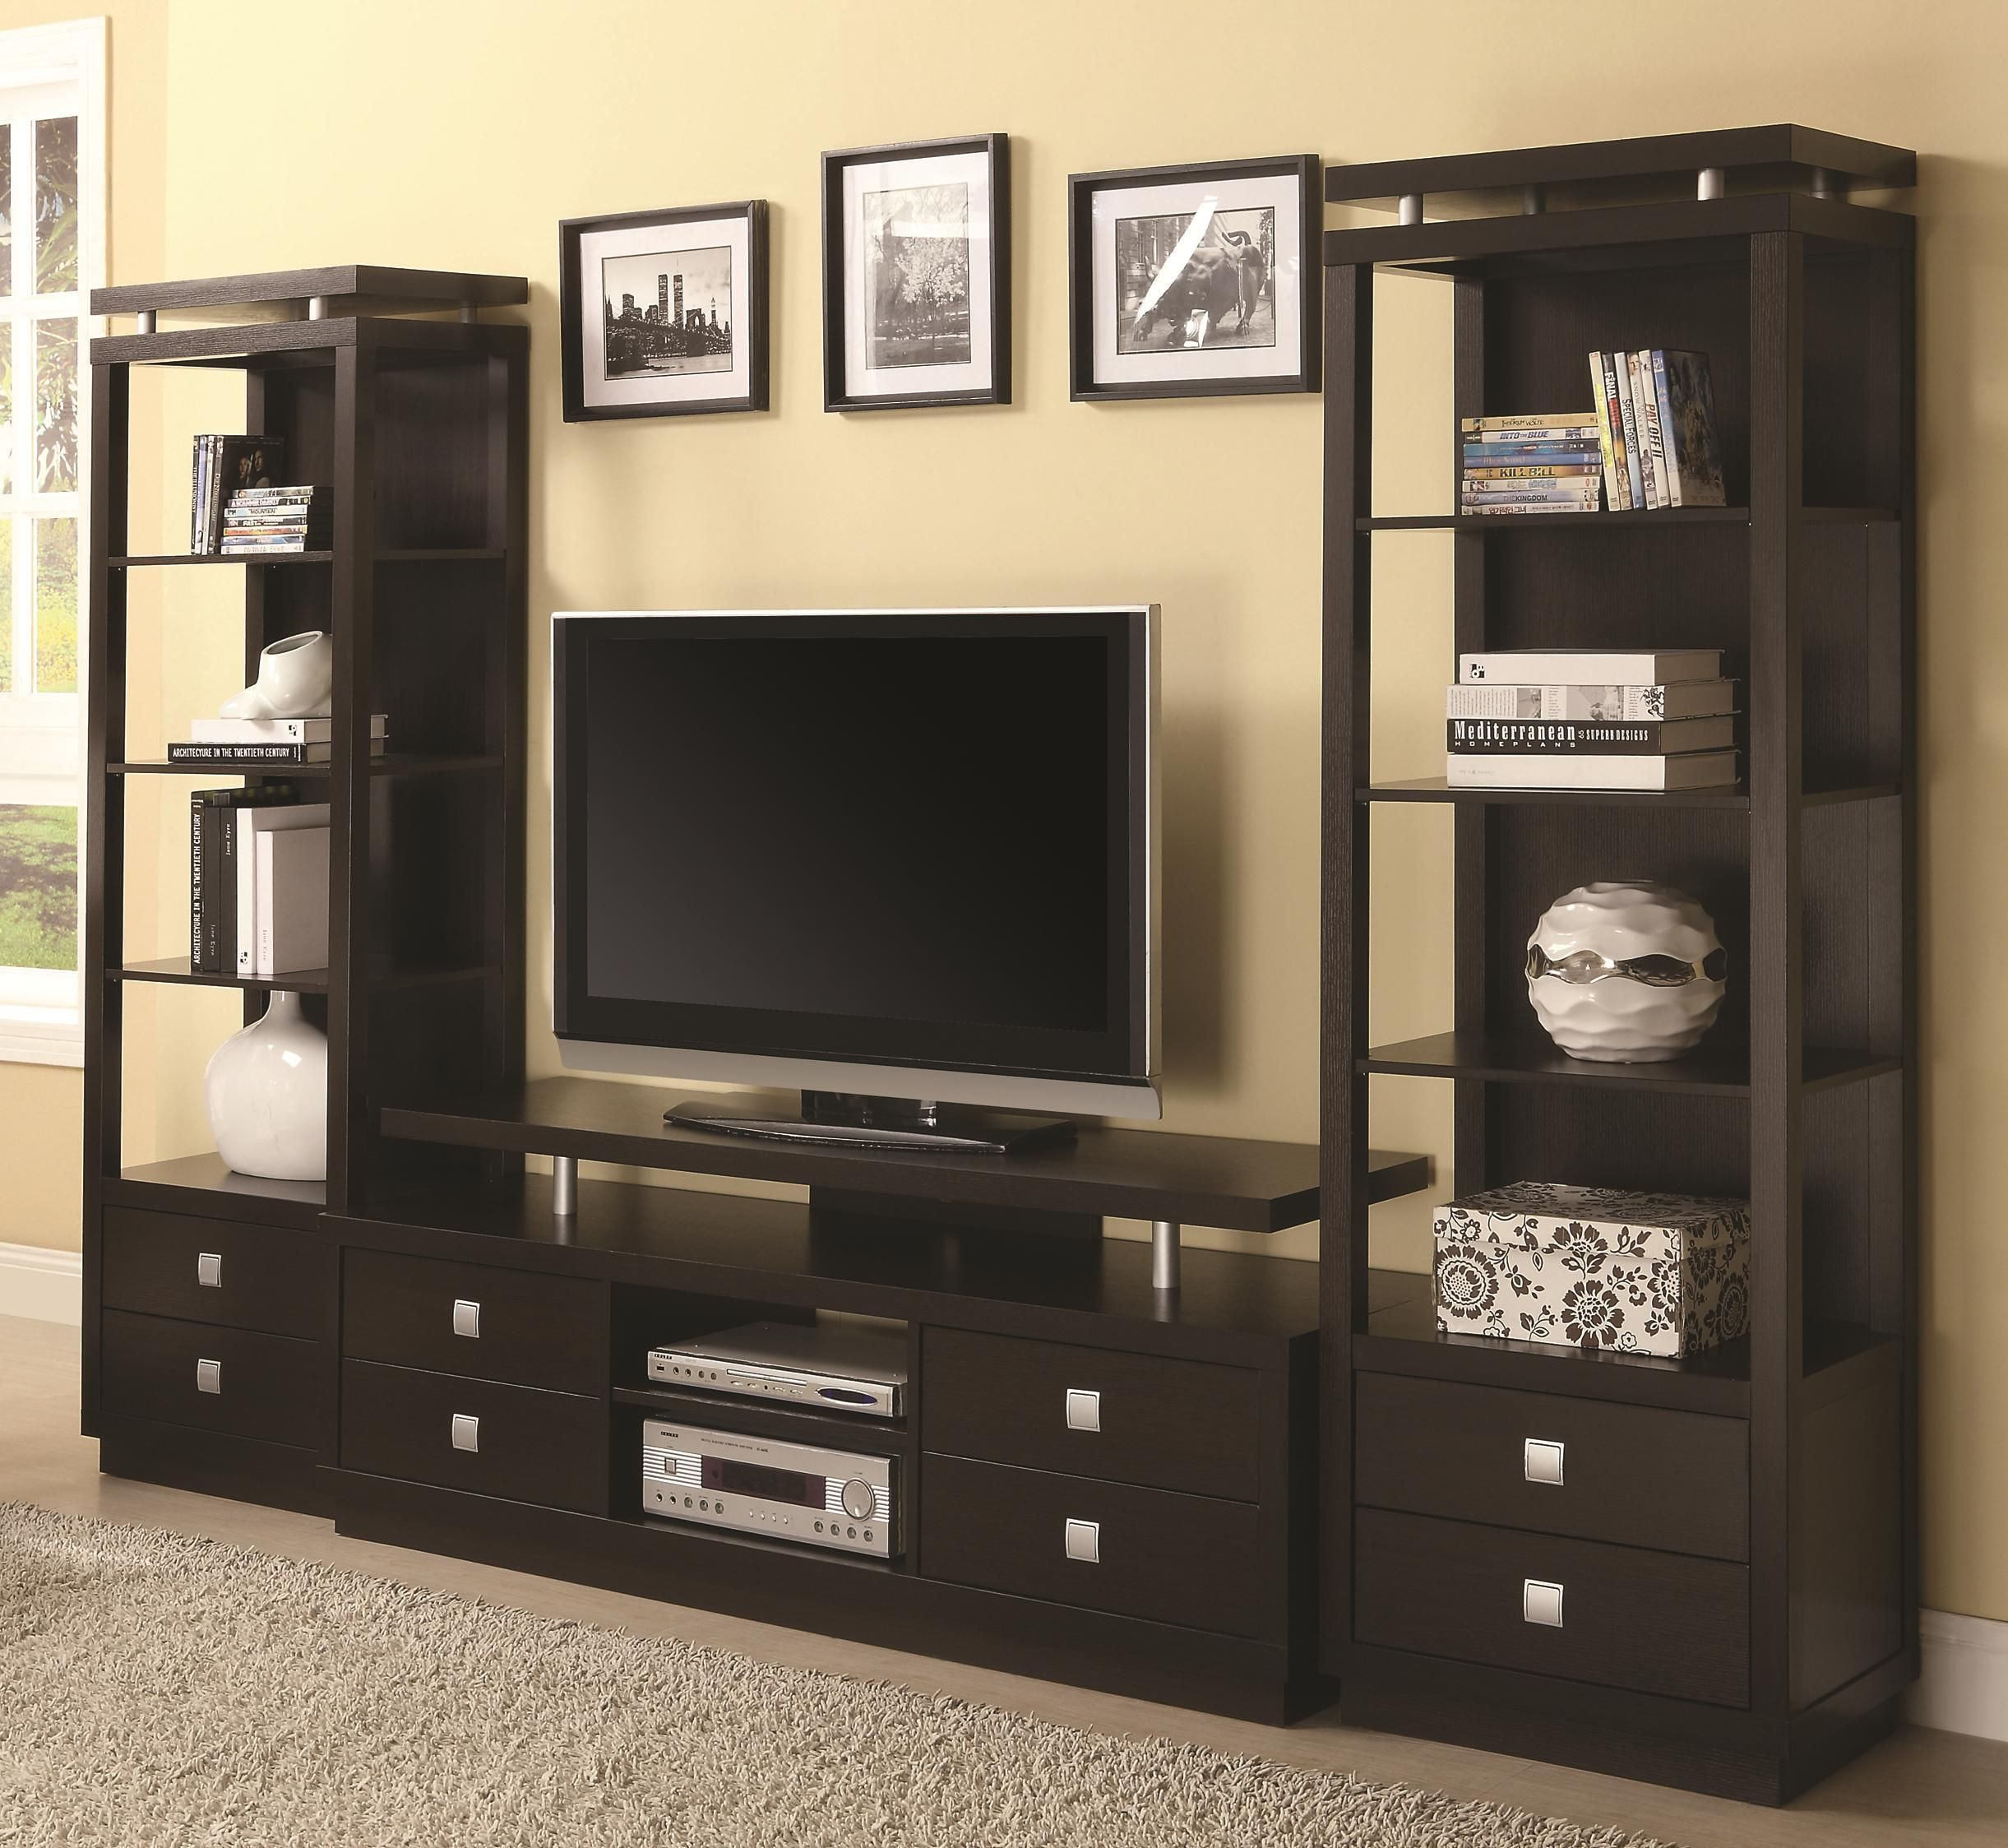 Furniture Design Wall Cabinet contemporary living room wall unit wooden. living room